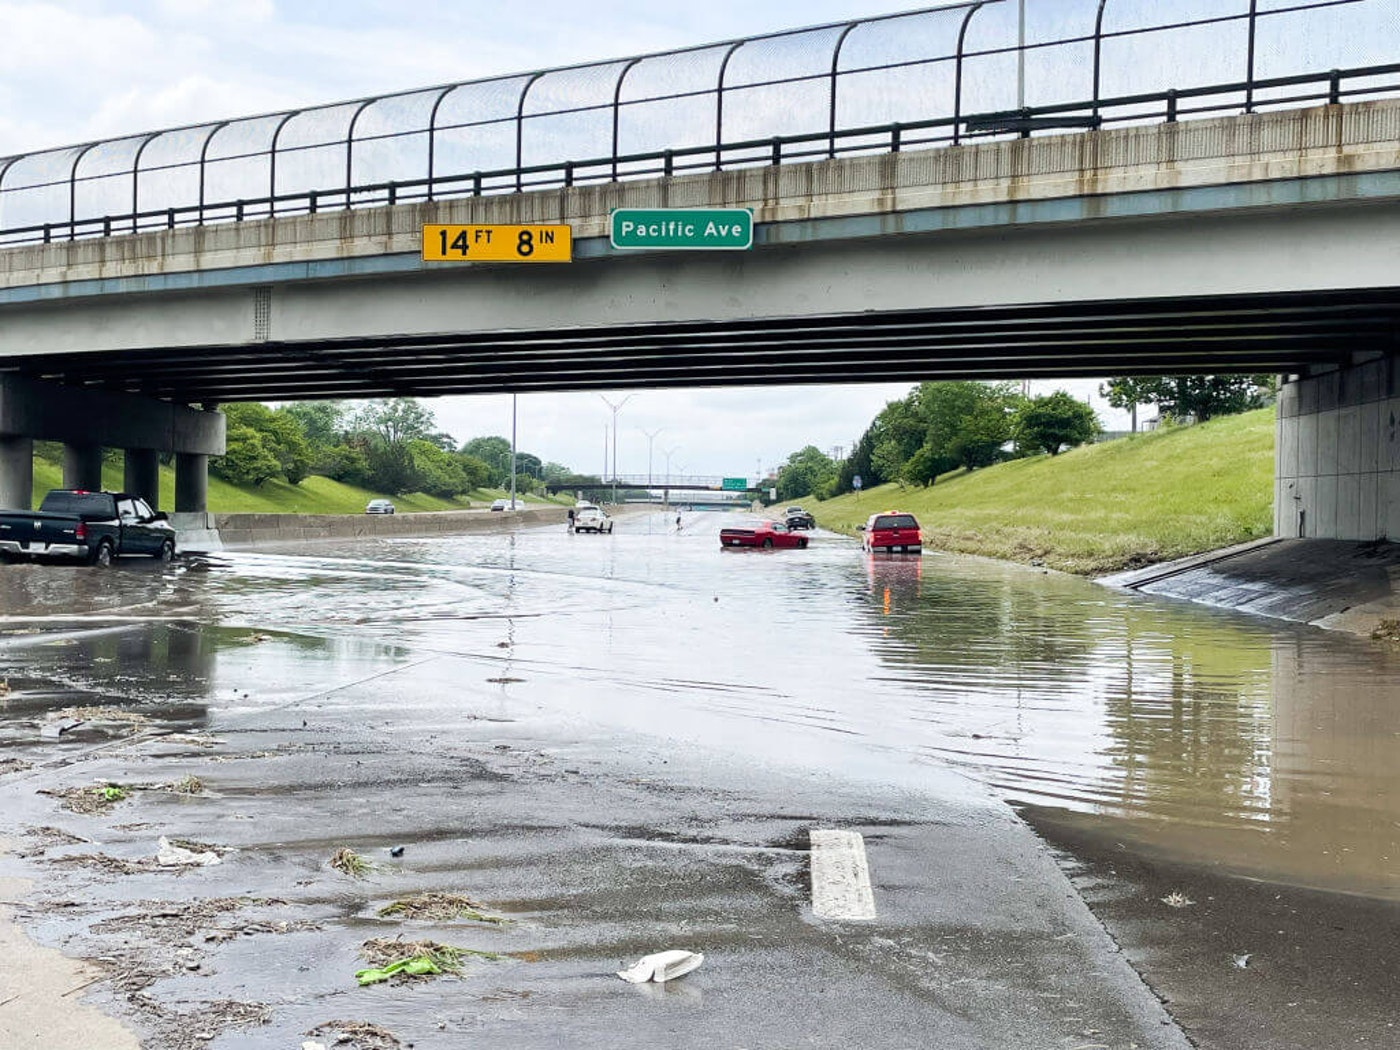 DETROIT, MI - JUNE 27: Many cars were abandoned at this I-96 overpass of Pacific Ave. causing the freeway to become impassible where the water was over 2 feet deep due to the torrential rains of the previous day during the day on I-96 freeway in Northwest Detroit on Saturday June 26, 2021 in Detroit, MI.